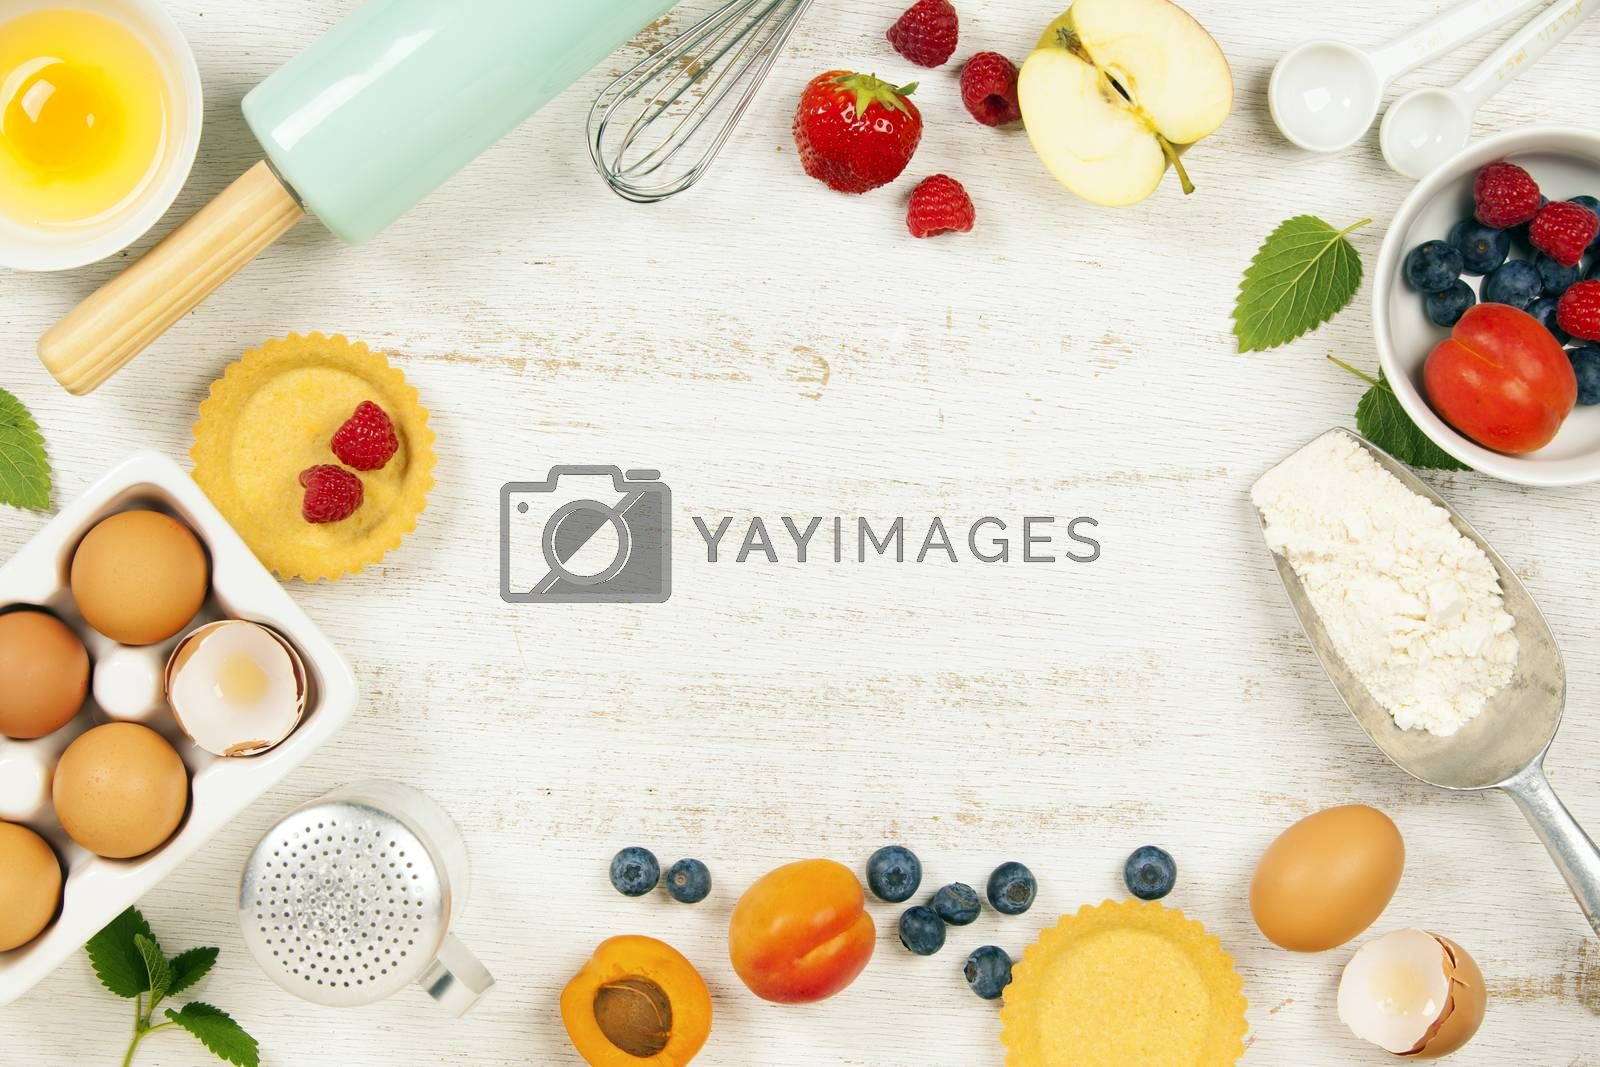 Baking tools and ingredients - flour, rolling pin, eggs, measuring spoons, fruits and berries on vintage wood table. Top view. Rustic background with free text space